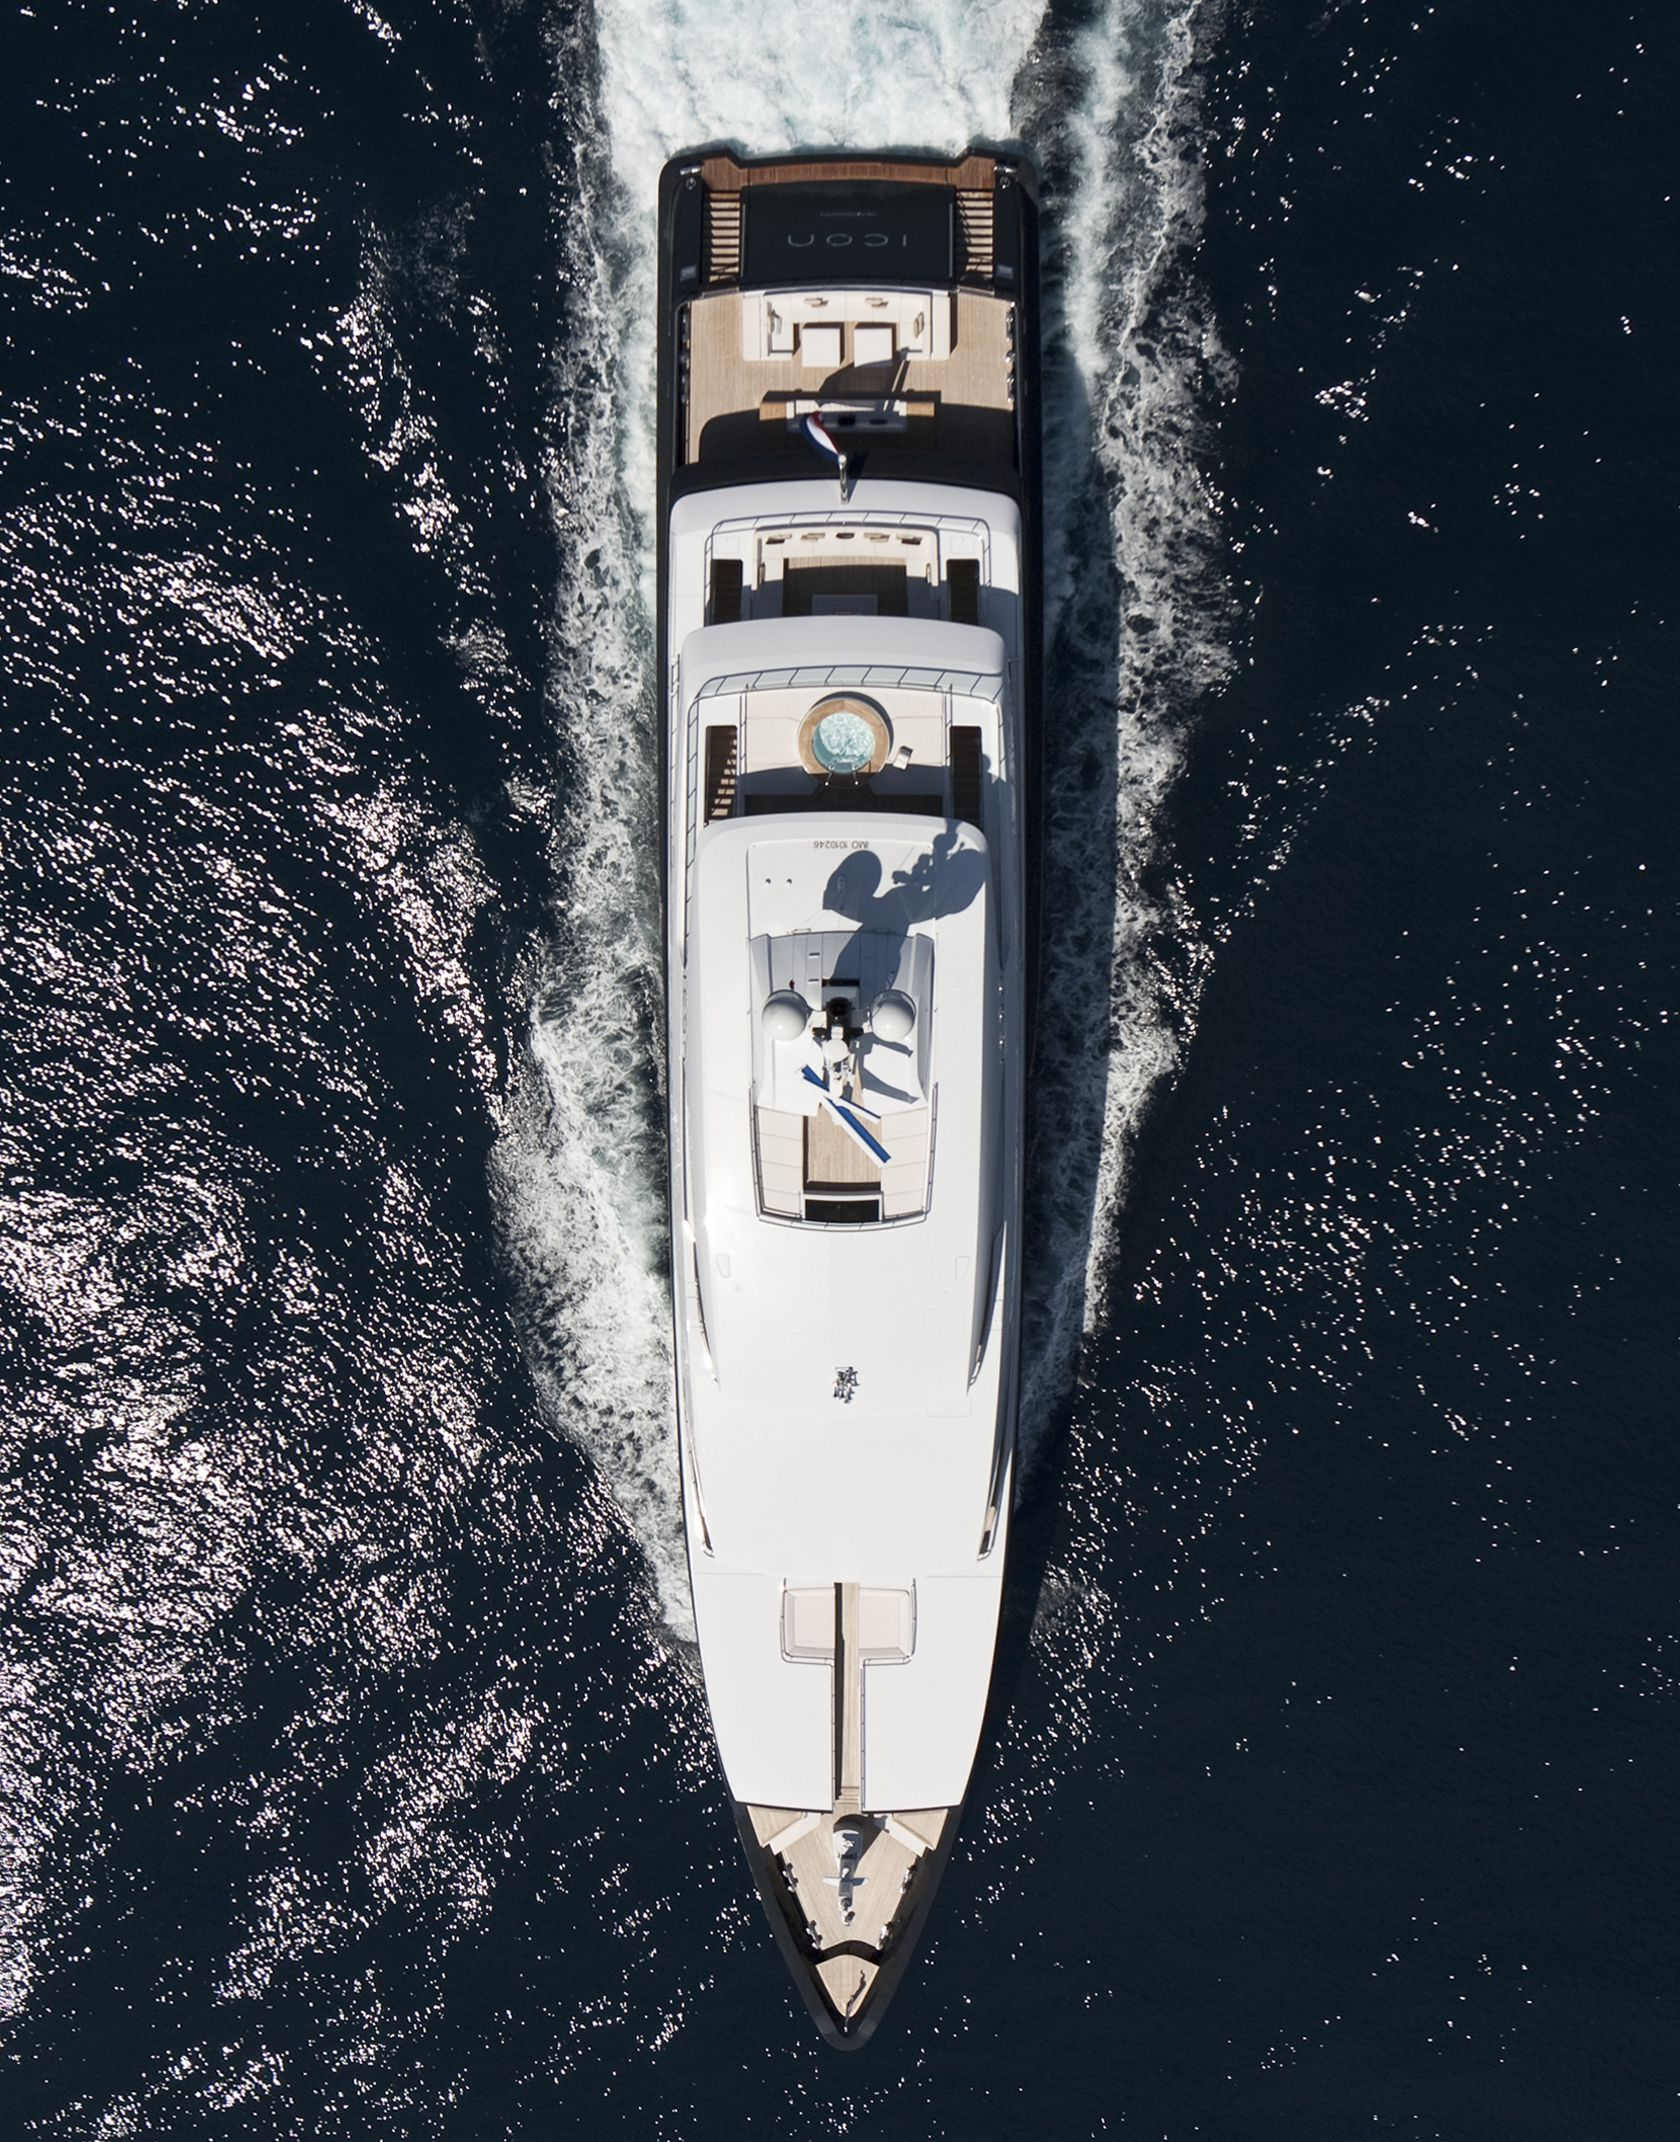 Motor yacht ICON photographed from above - Image credit ICON YACHTS